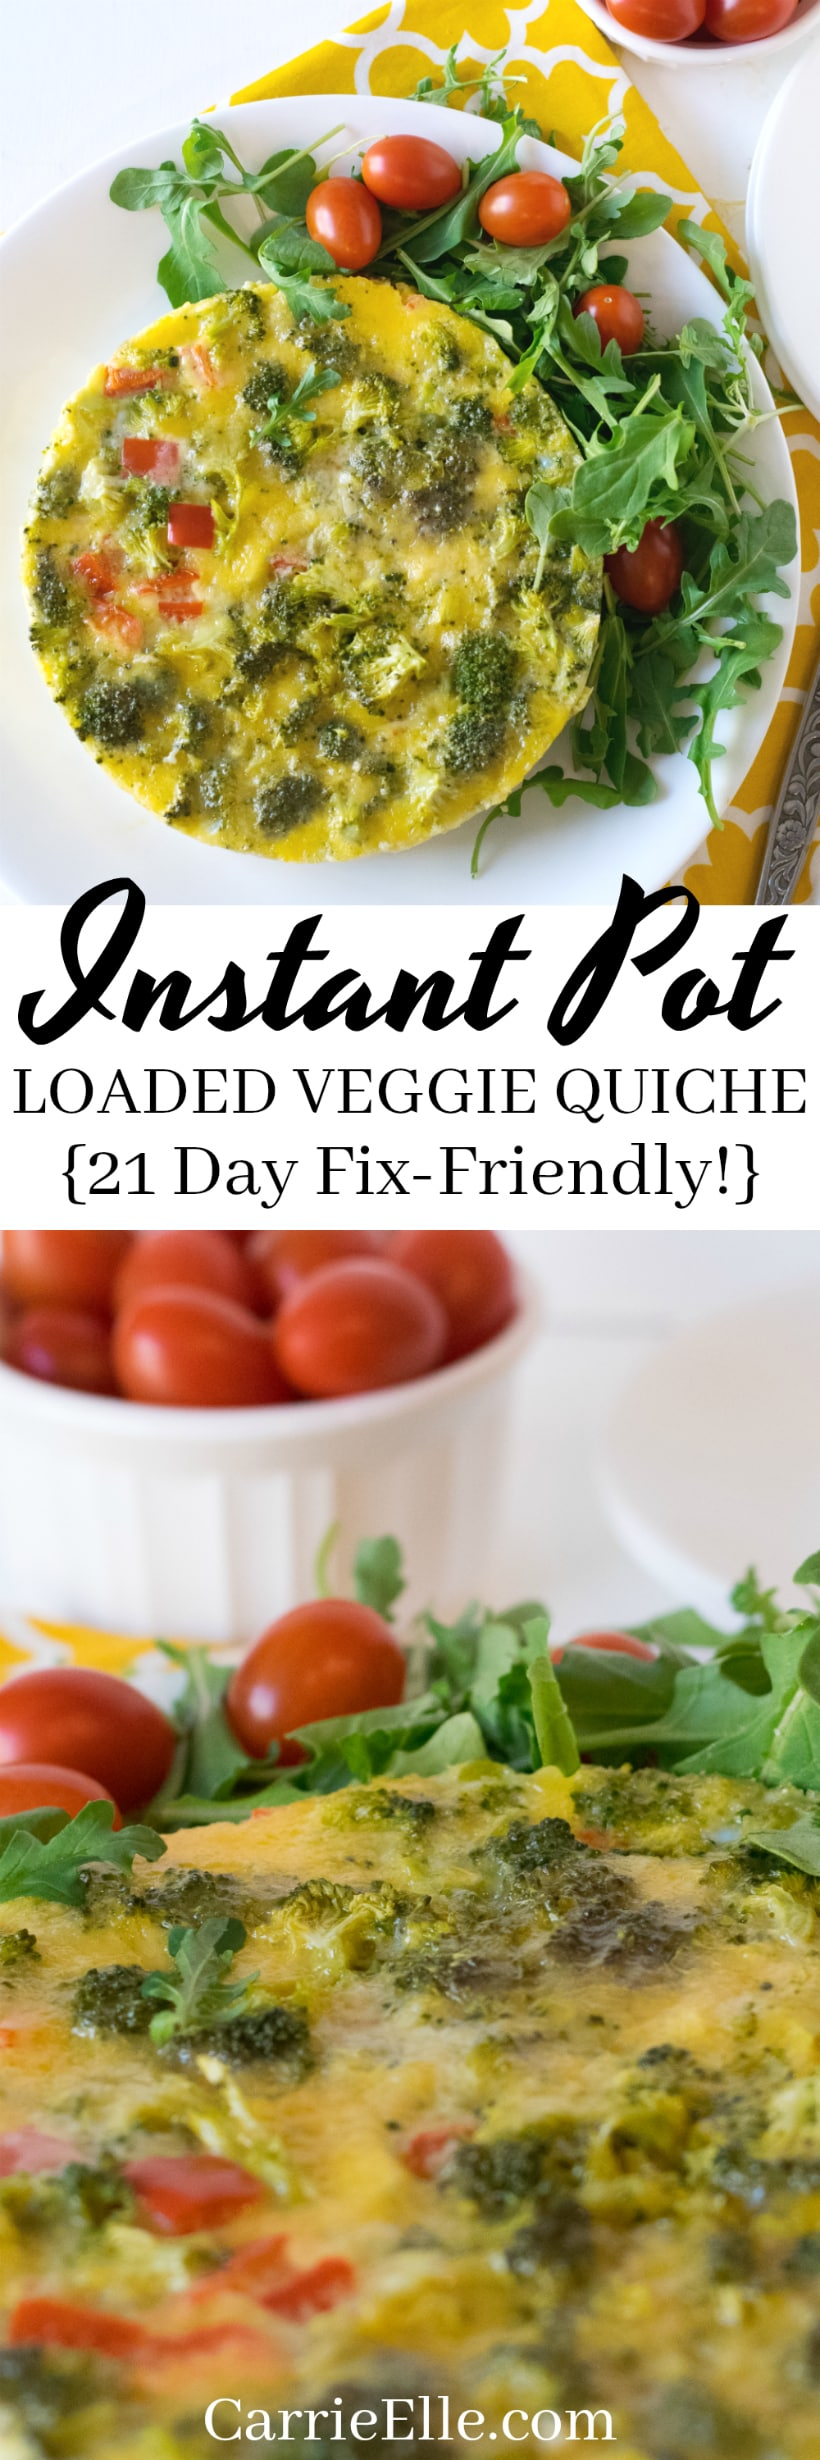 21 Day Fix Instant Pot Quiche